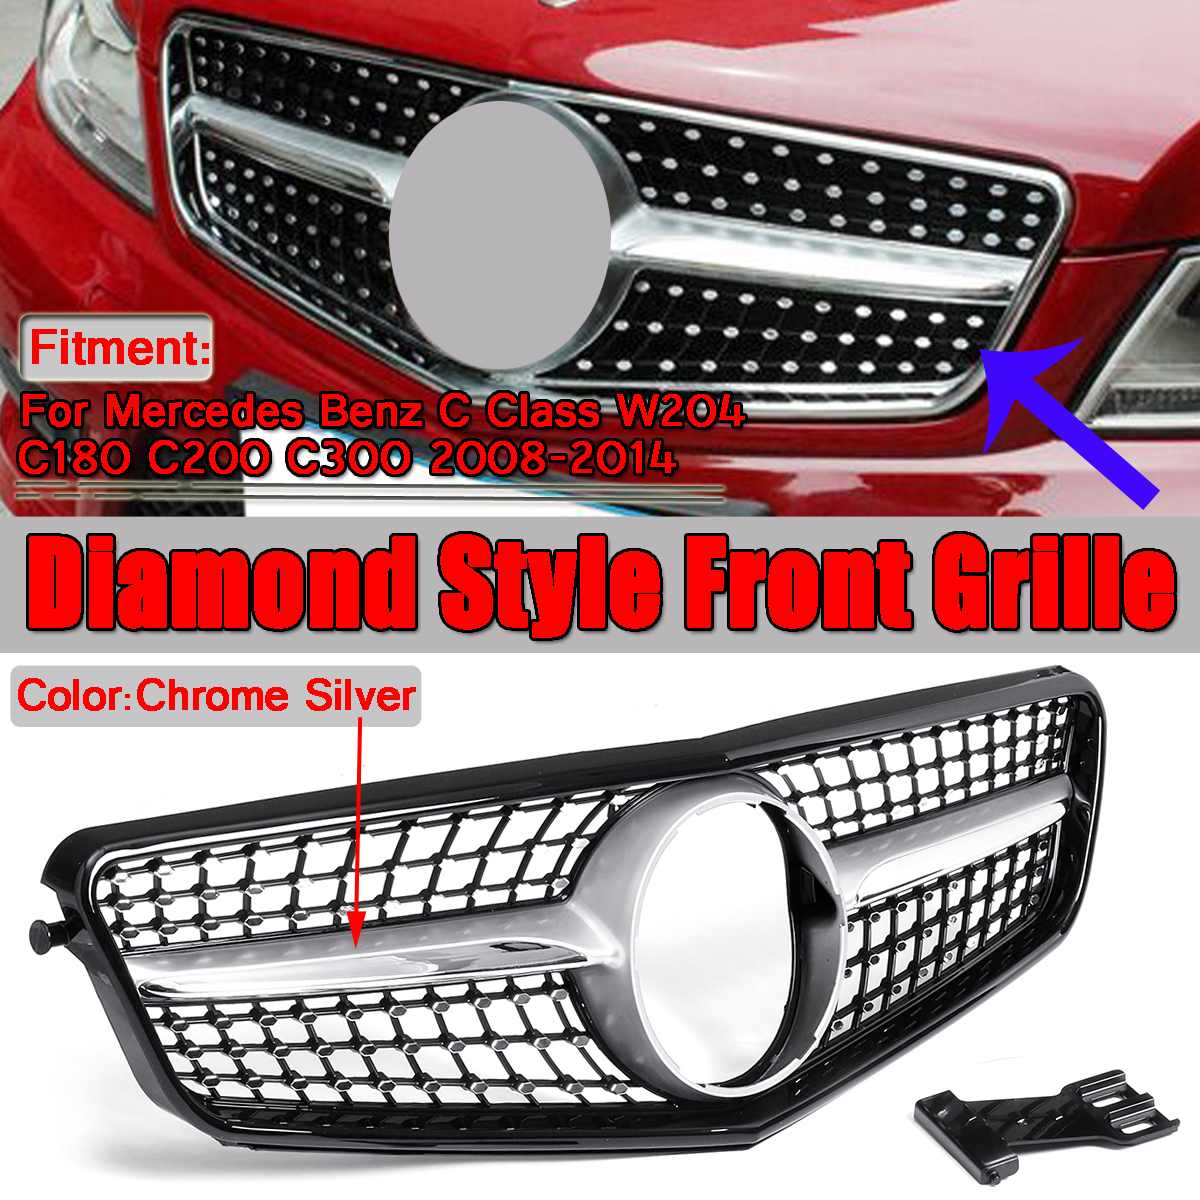 High Quality Black/Chrome Car Front Bumper Grille <font><b>Grill</b></font> For Mercedes For <font><b>Benz</b></font> C Class <font><b>W204</b></font> C180 C200 C300 2008-2014 image